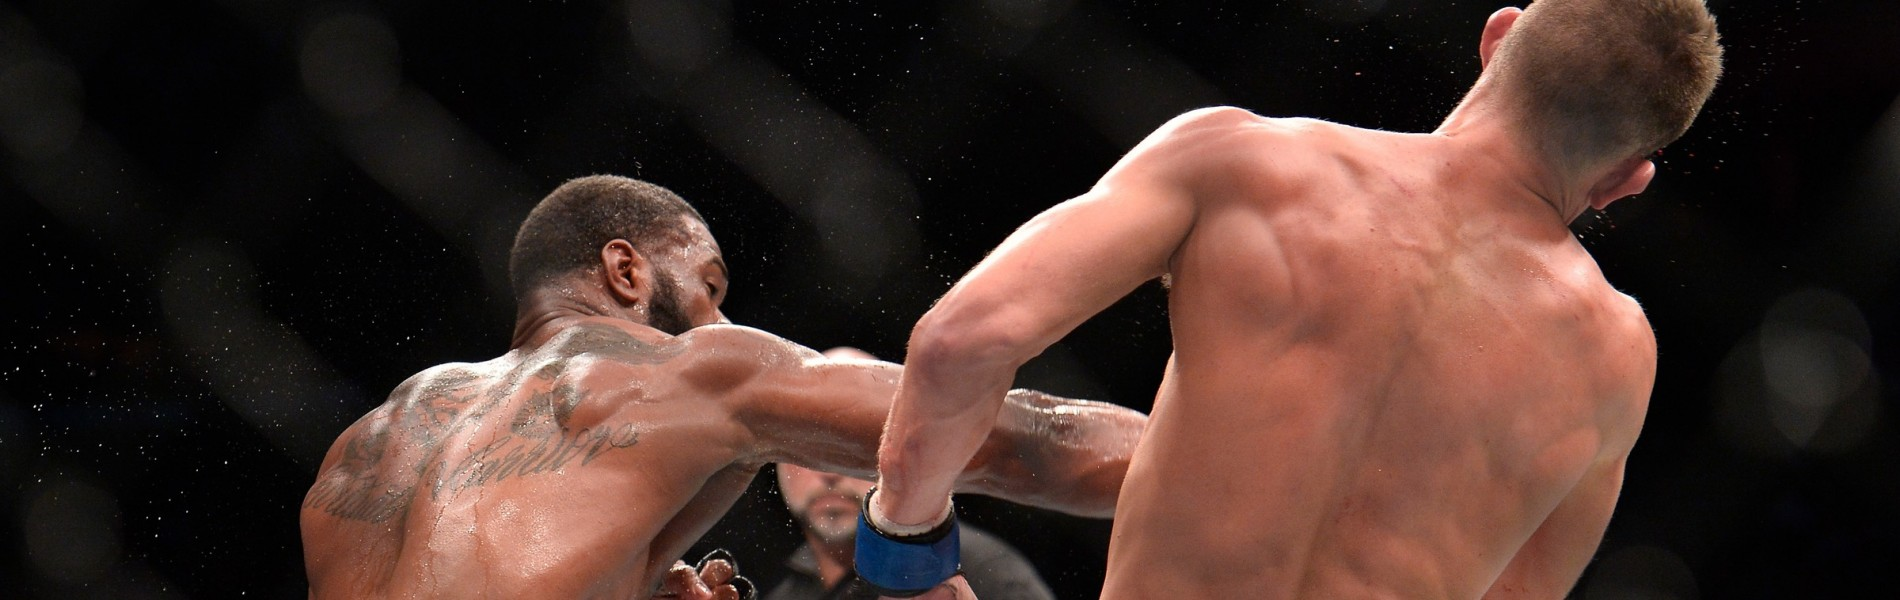 Tyron Woodley punches Stephen Thompson in their UFC welterweight championship bout during the UFC 205 event at Madison Square Garden on November 12, 2016 in New York City